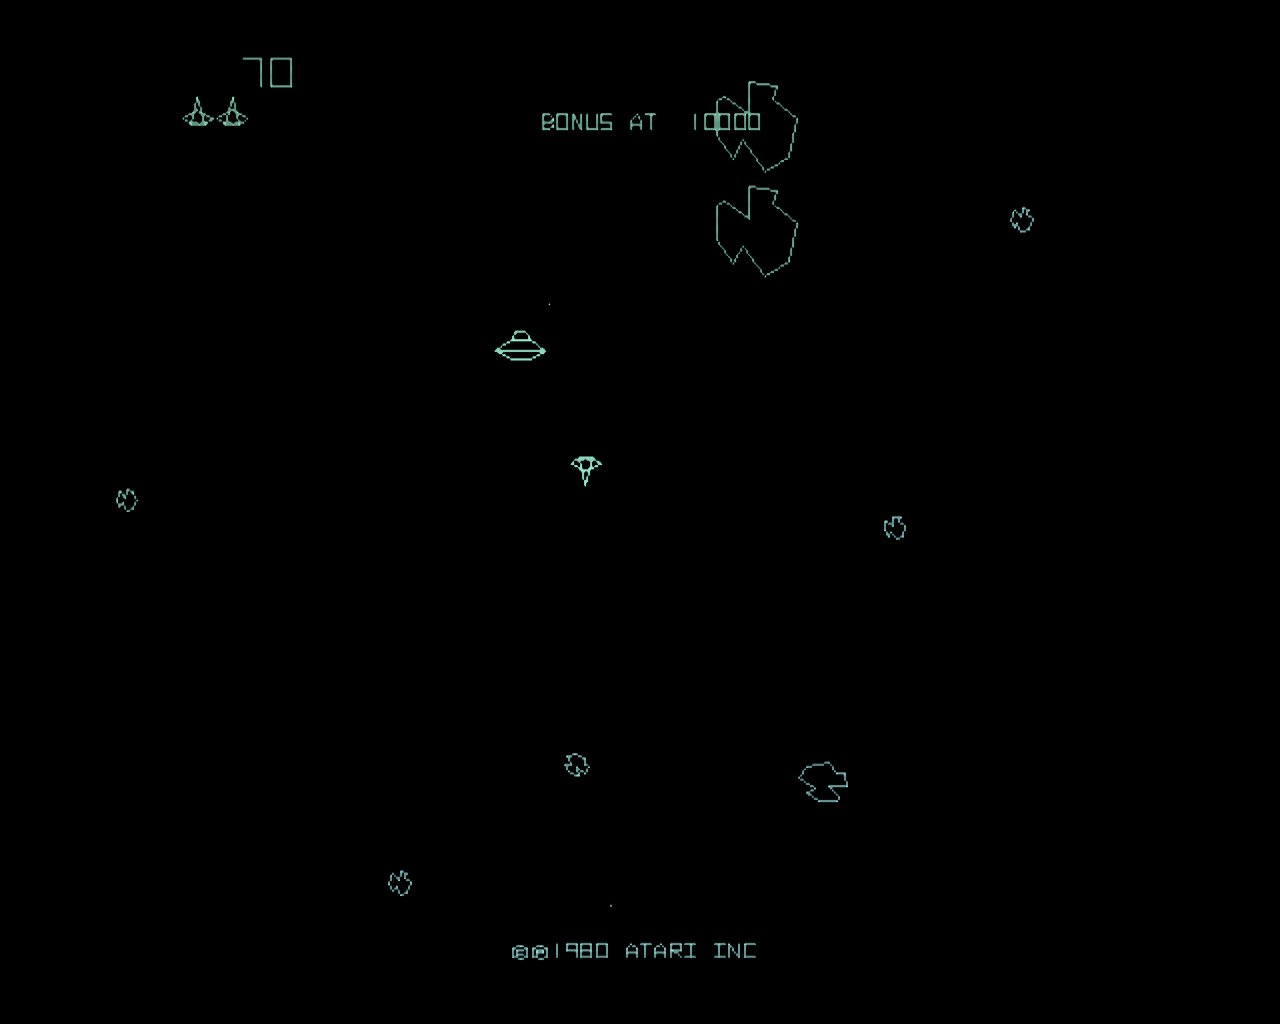 1280x1024 How To Make Vector Arcade Games Look Their Best